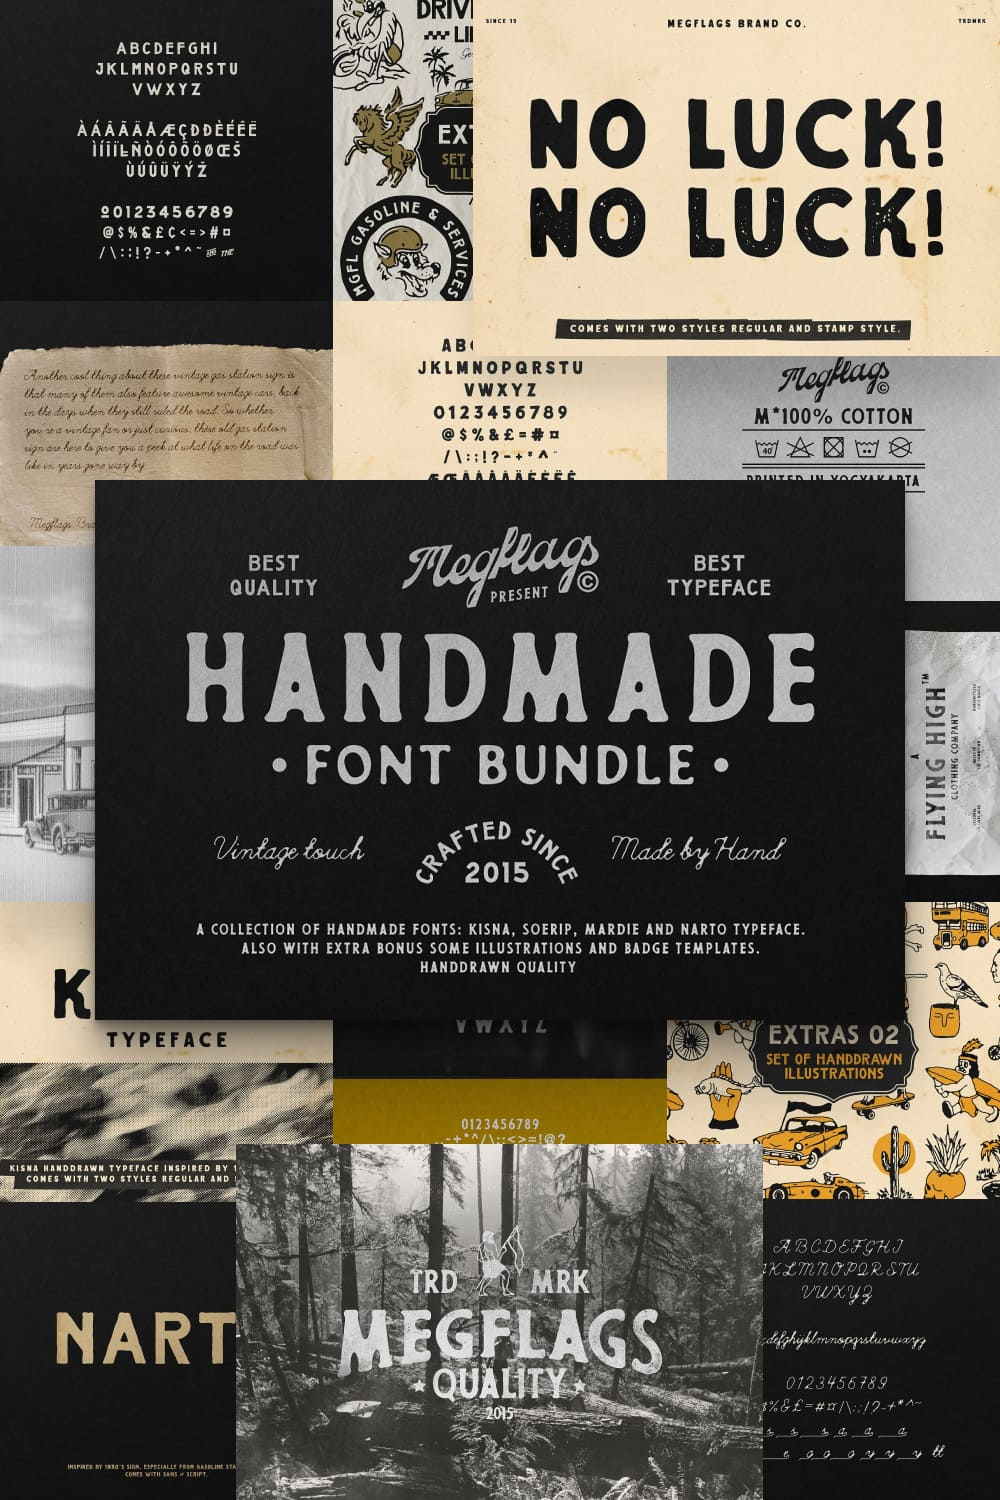 Vintage and craft typeface with slight scuffs.